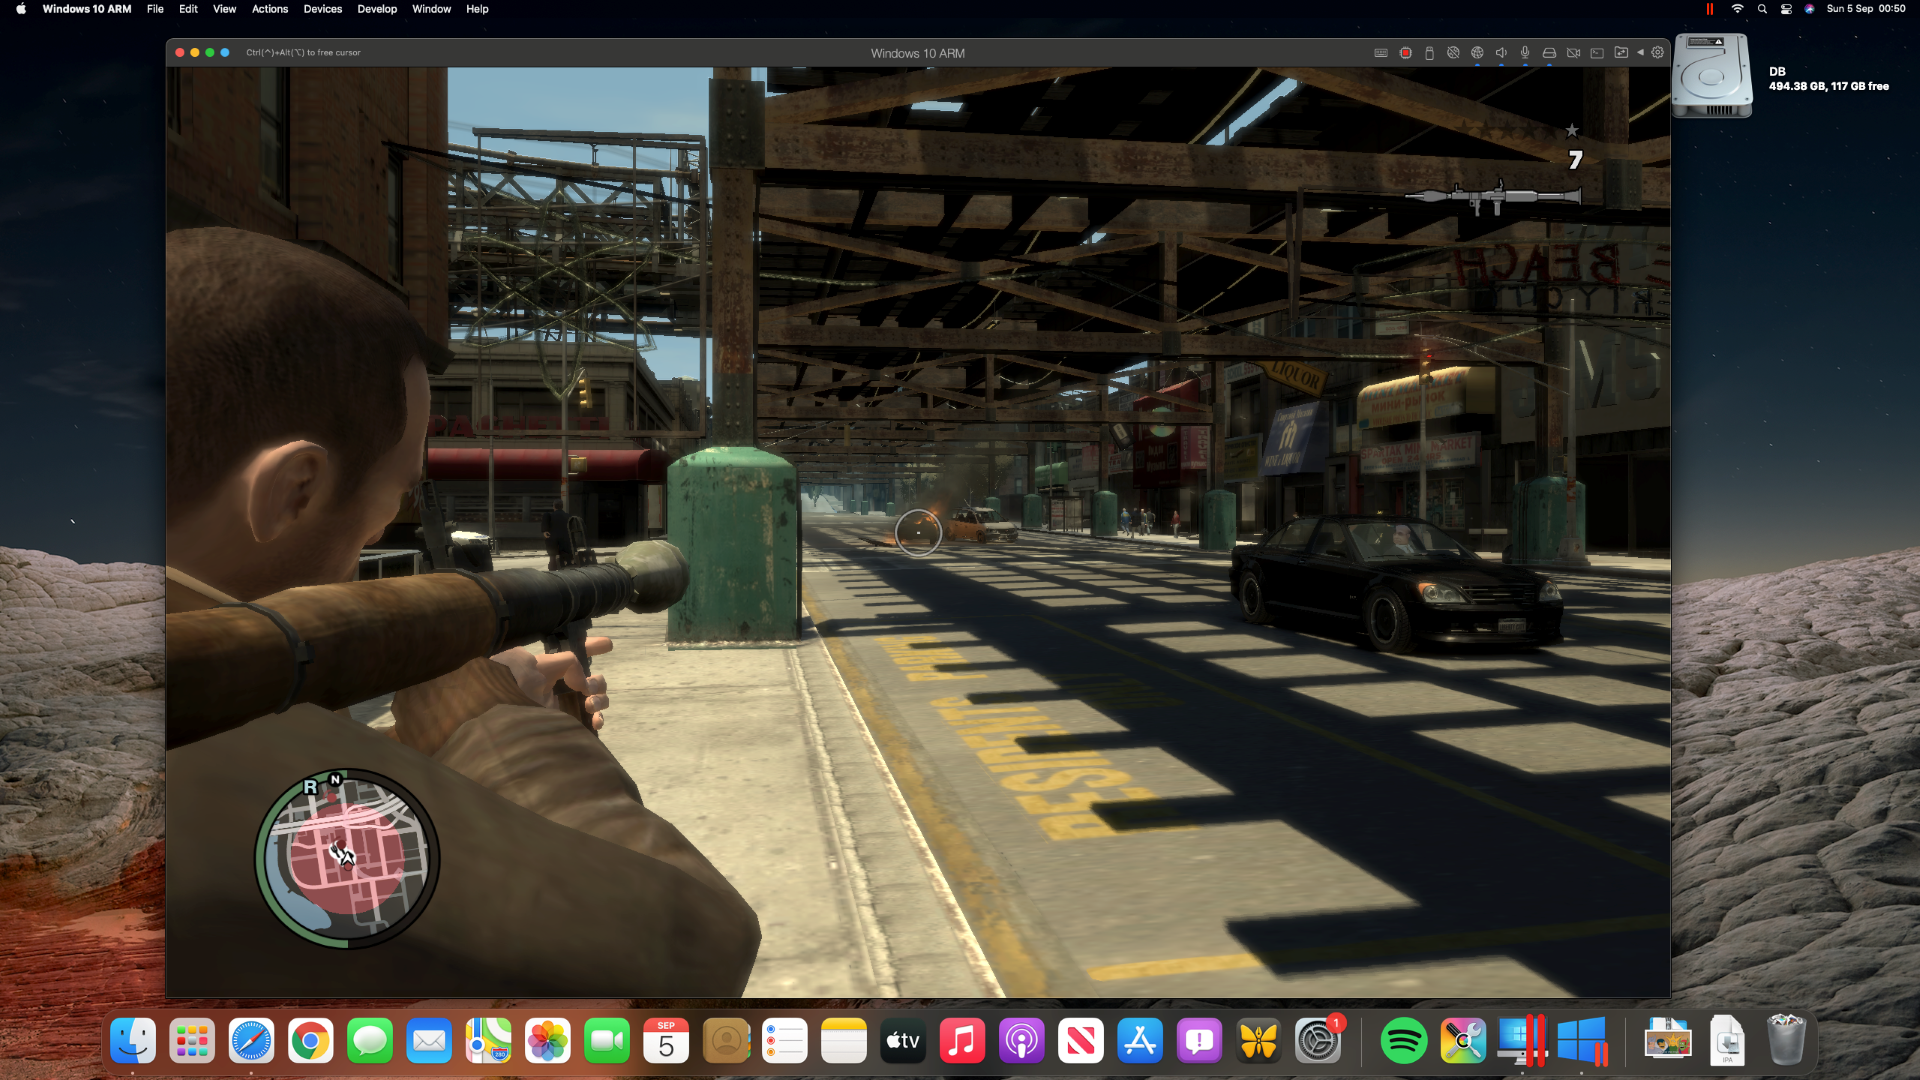 GTA IV being played in Parallels Desktop on a M1 Mac mini